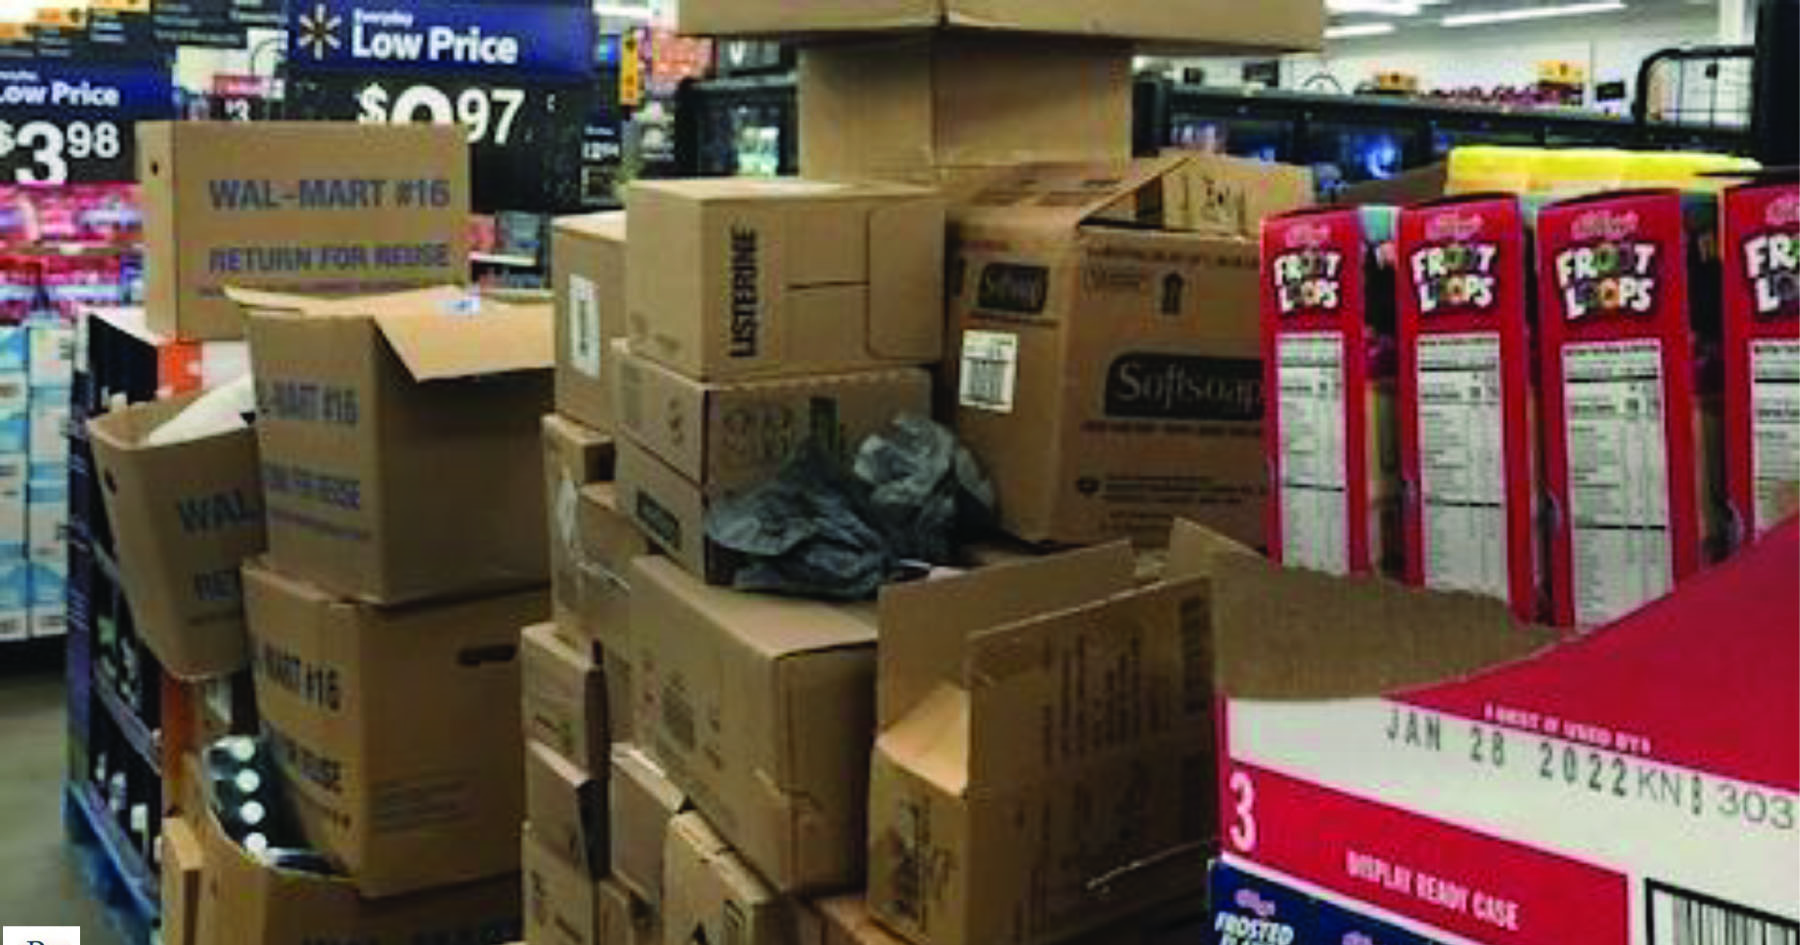 Product boxes stacked in aisles in Walmart Supercenter in Pennyslvania, March 2021